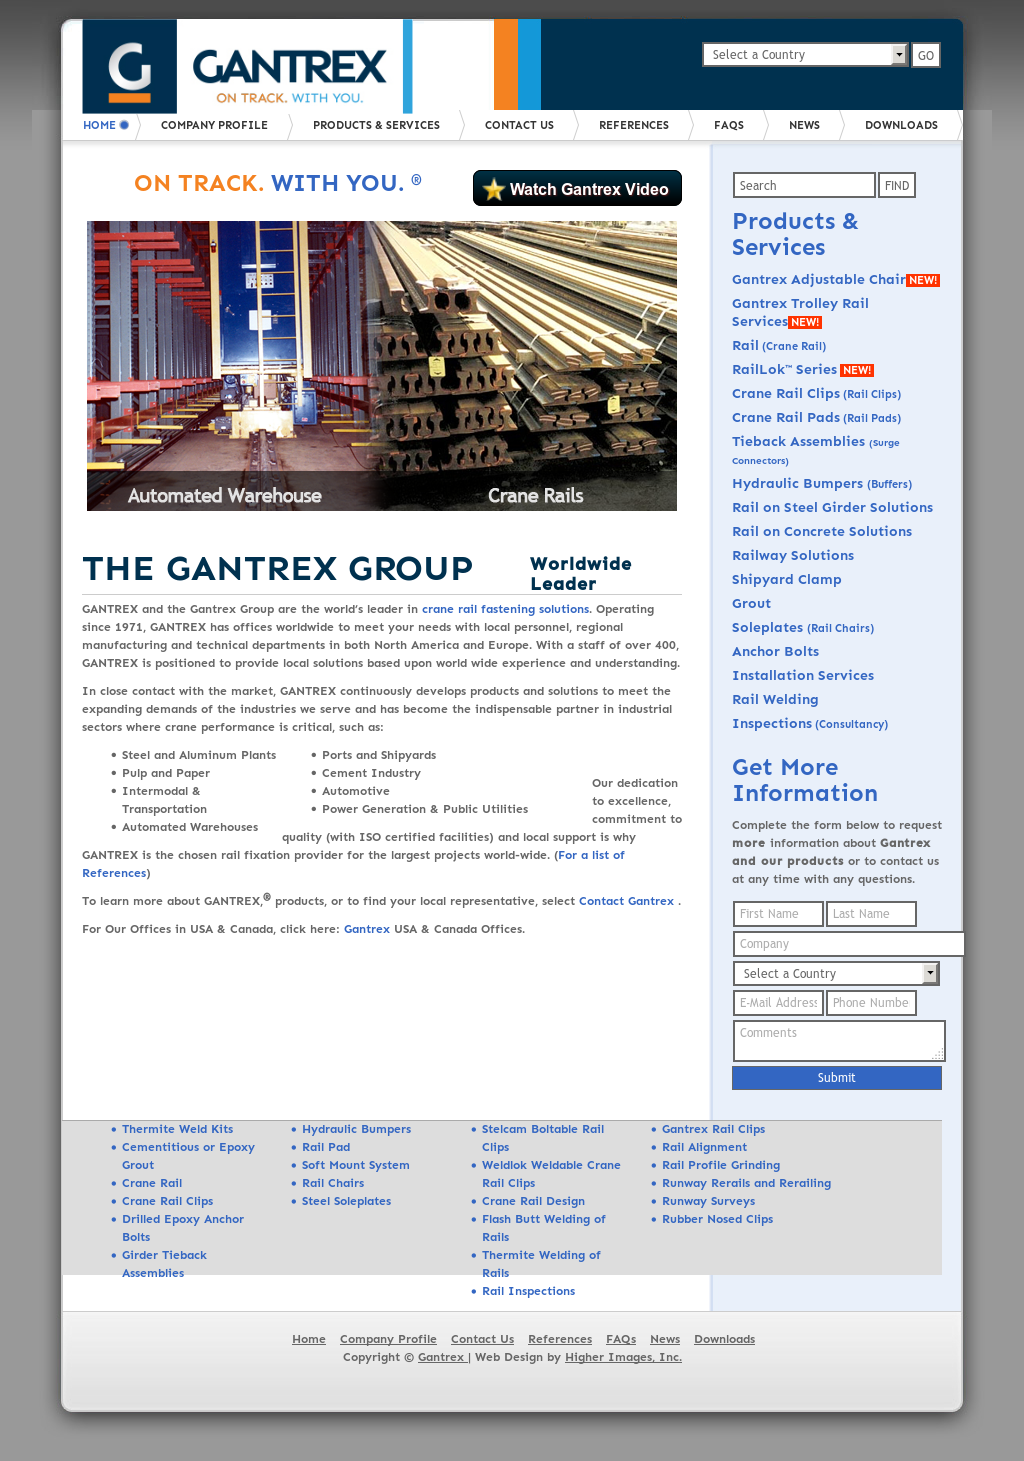 Gantrex Competitors, Revenue and Employees - Owler Company